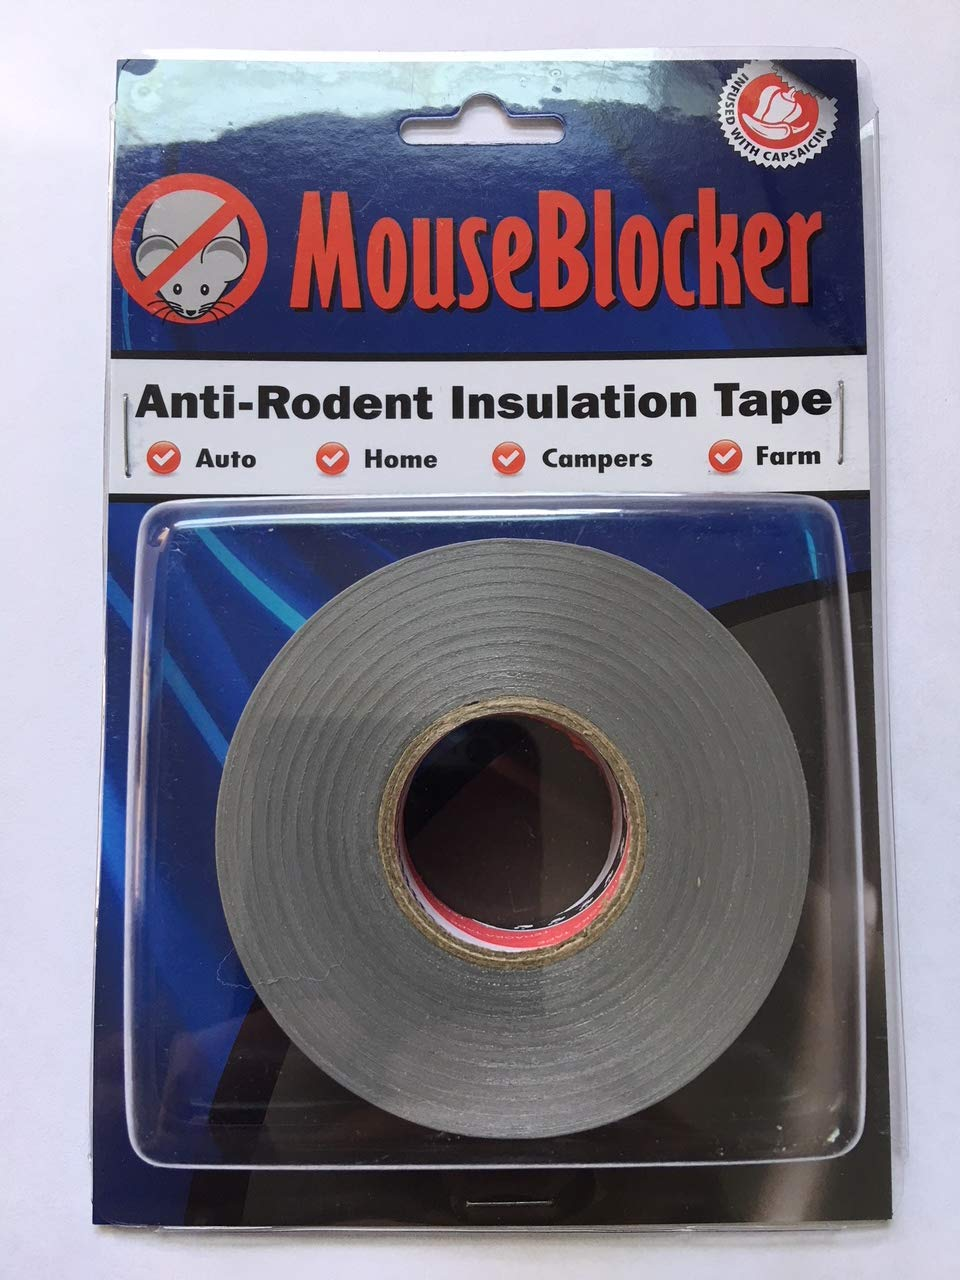 Mouse Blocker Anti-Rodent Insulated Repair Tape or Rodent Tape - The  Deterrent The Pros use